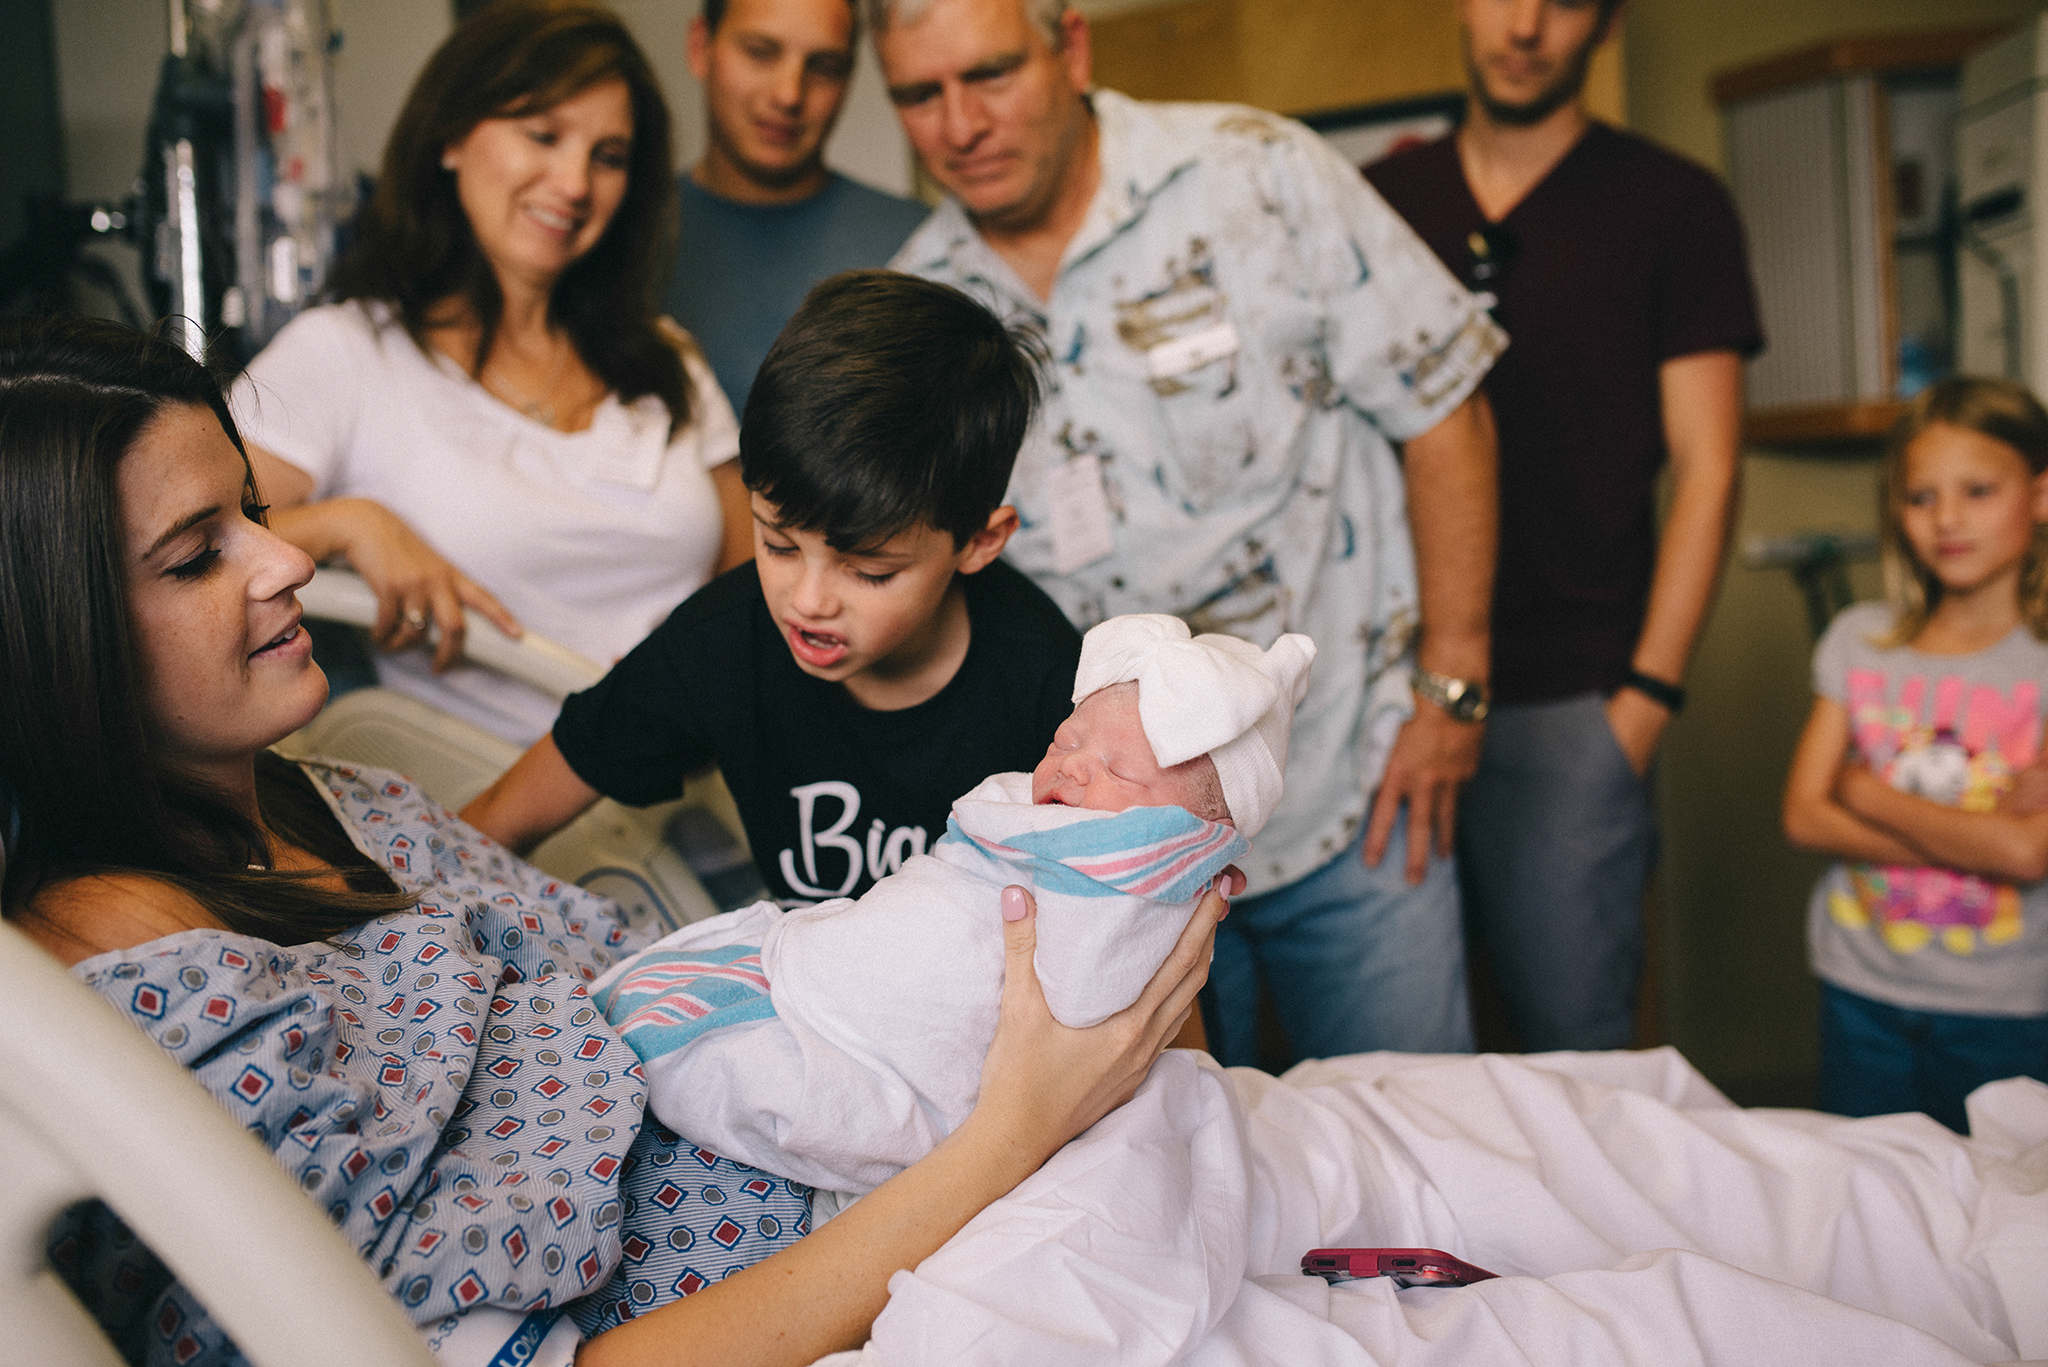 Big brother meets new little sister at Warner Robins Hospital after delivery